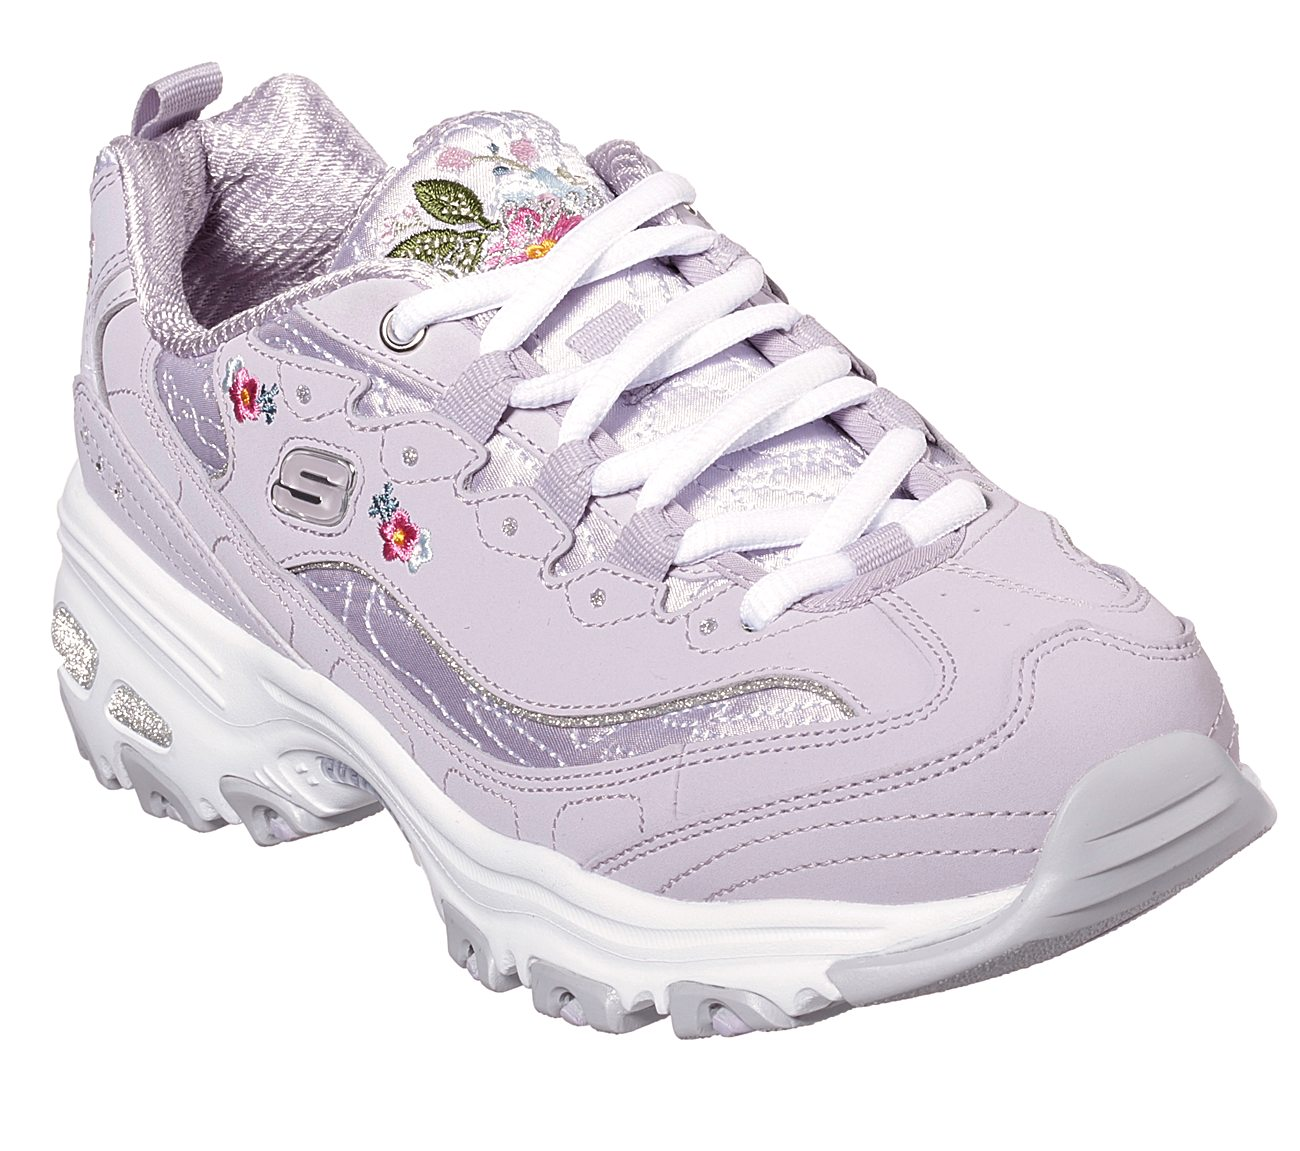 b9f4a73c1724 Buy SKECHERS D Lites - Bright Blossoms D Lites Shoes only  70.00